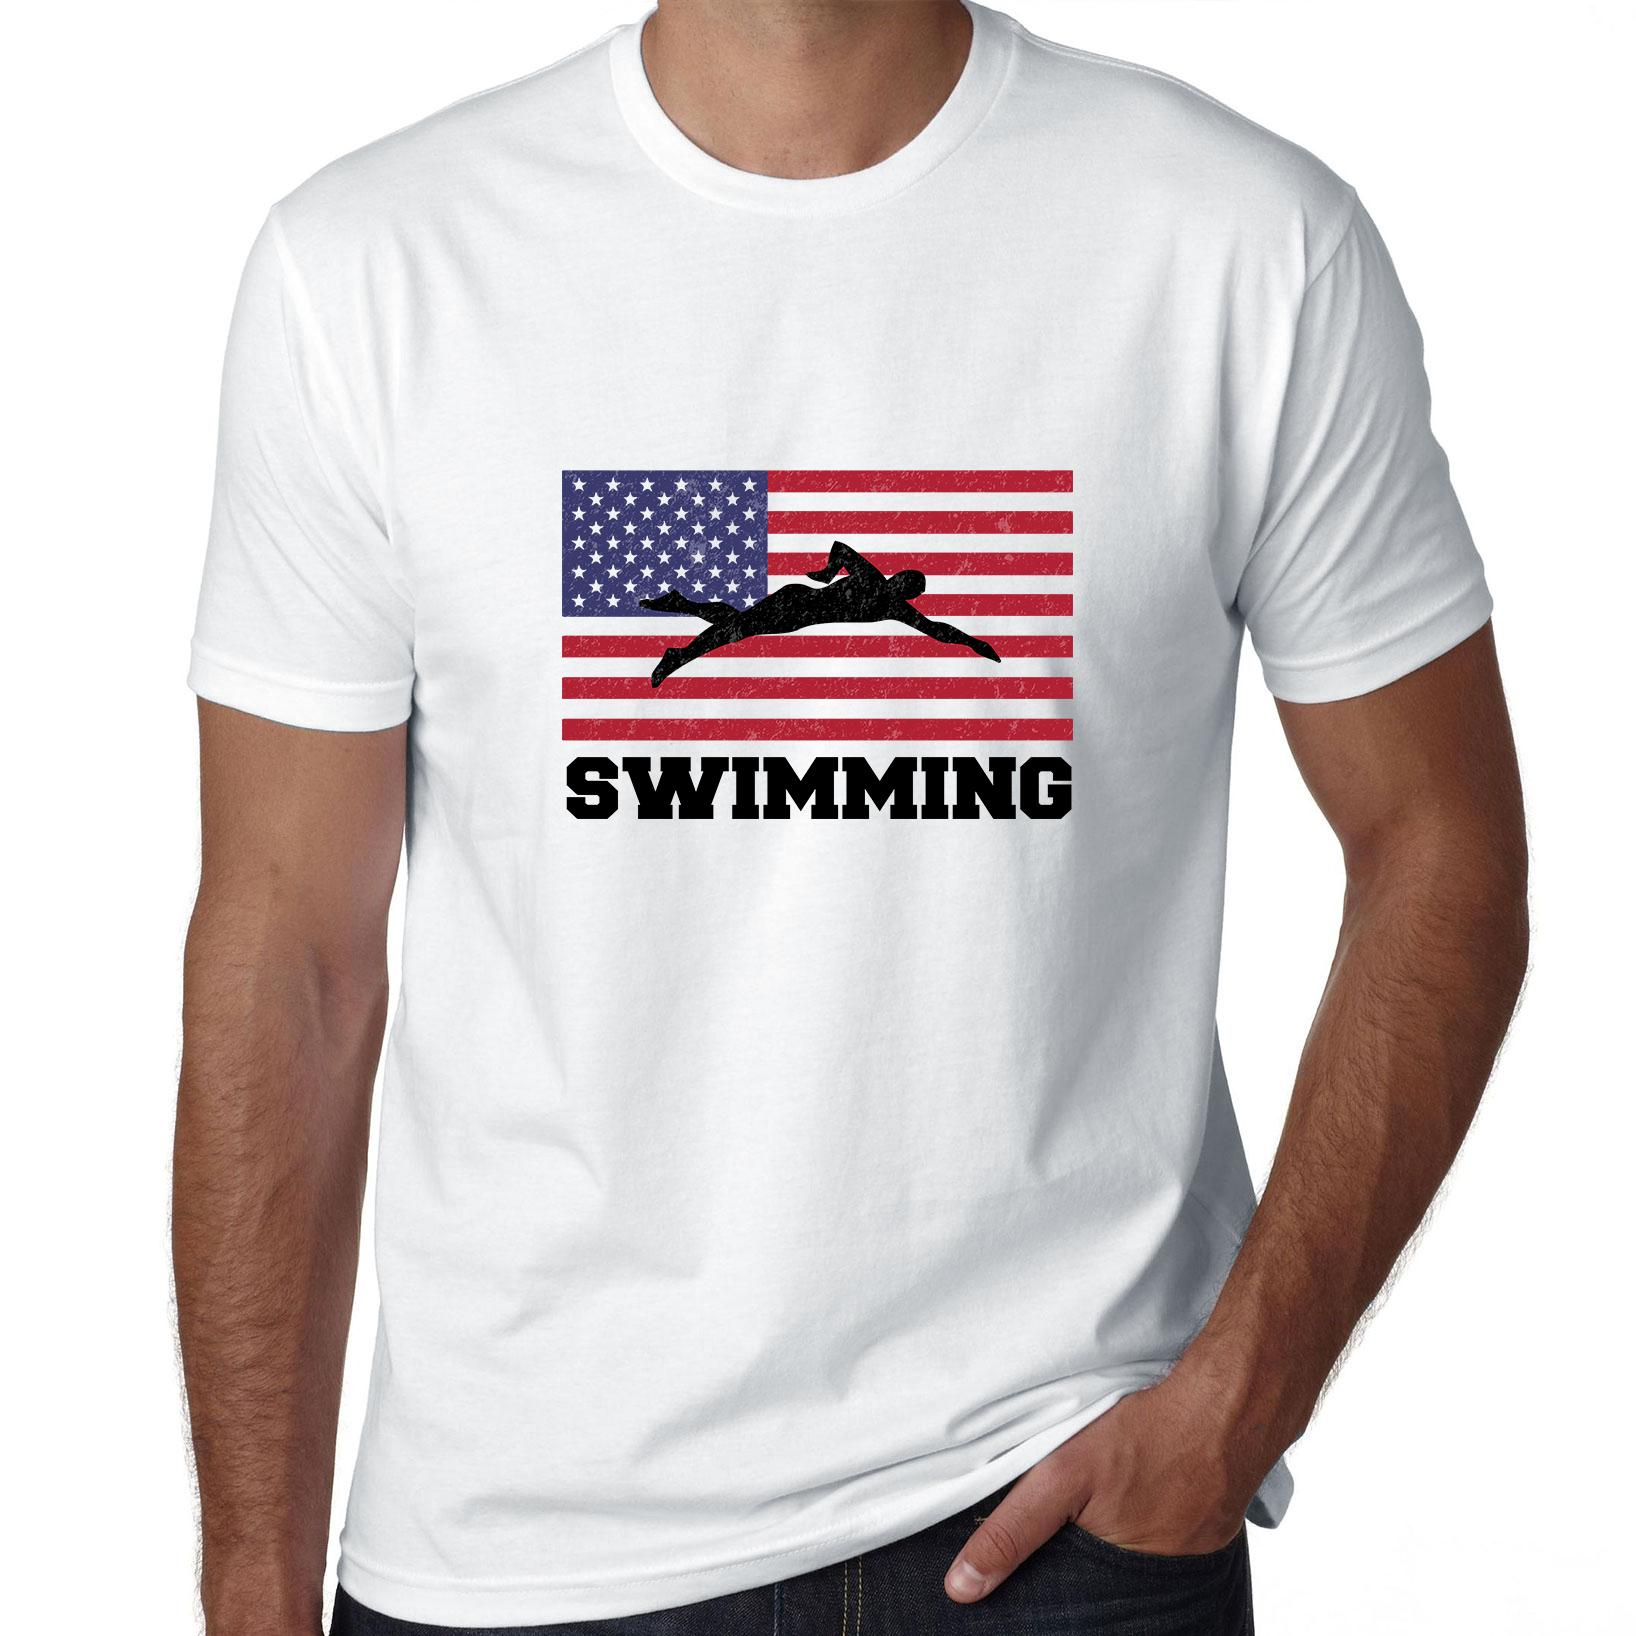 USA Olympic - Swimming - Flag - Silhouette Men's T-Shirt